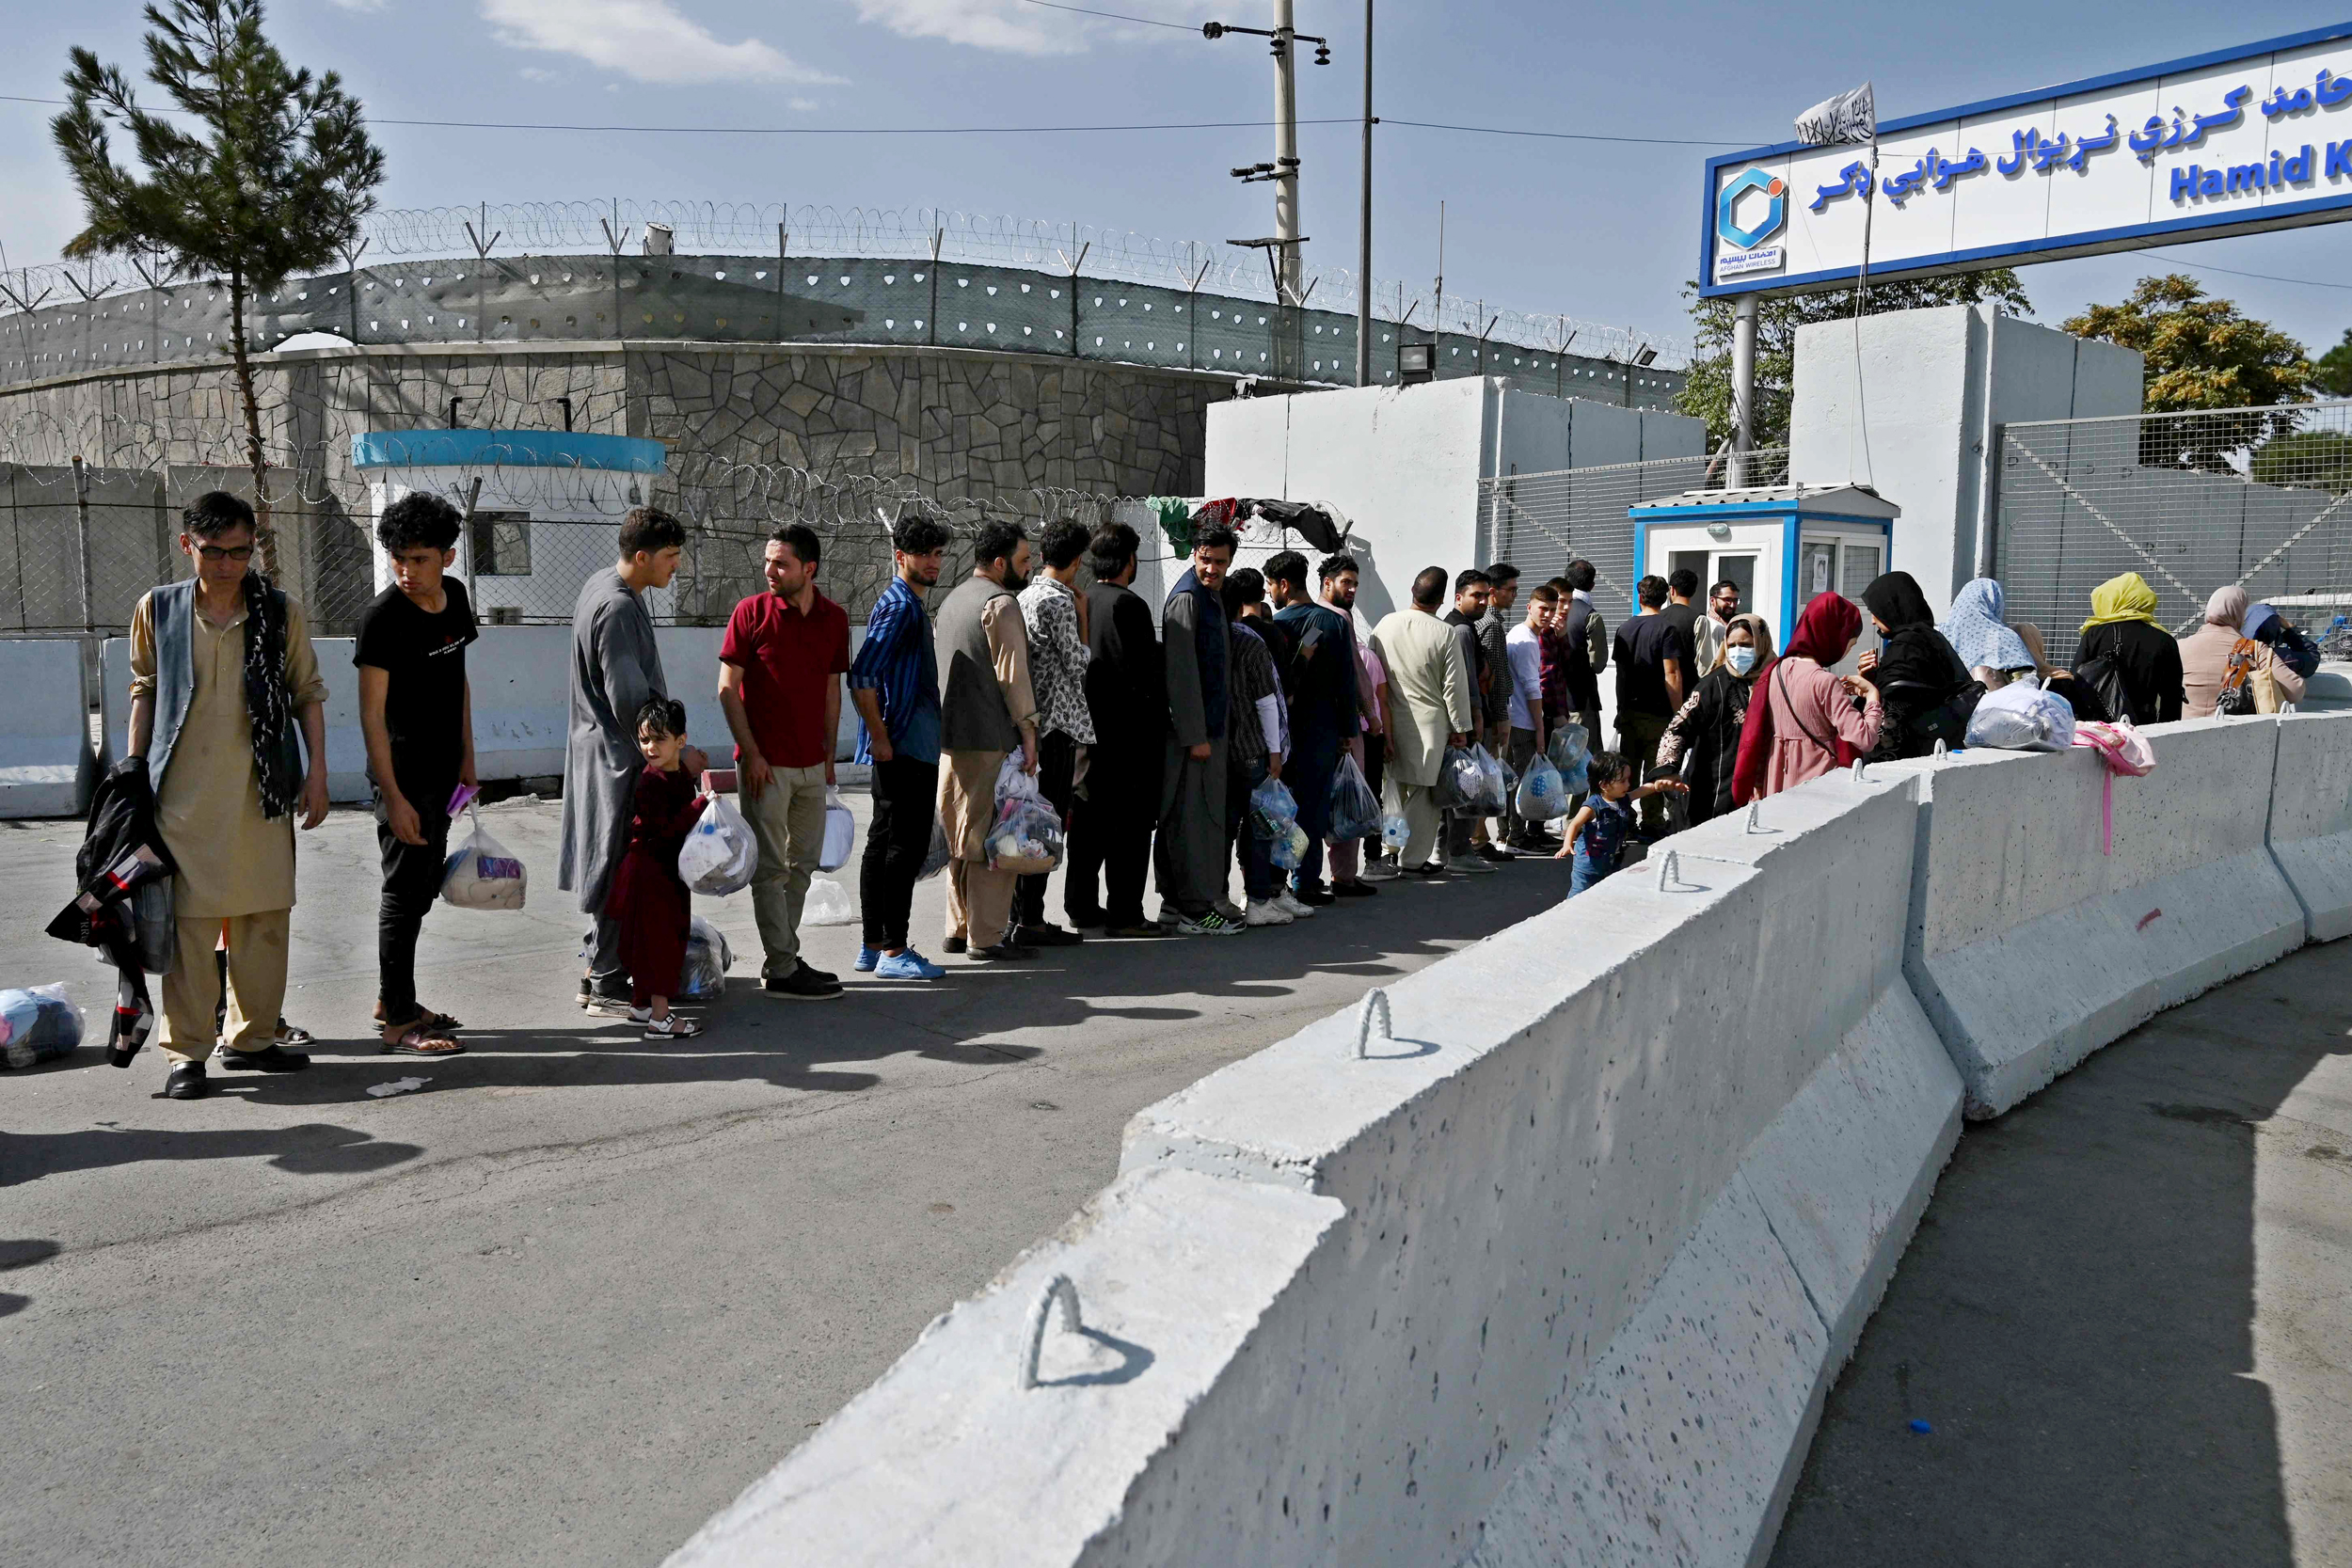 Roughly 350 Americans who want to leave are still in Afghanistan, State Department says